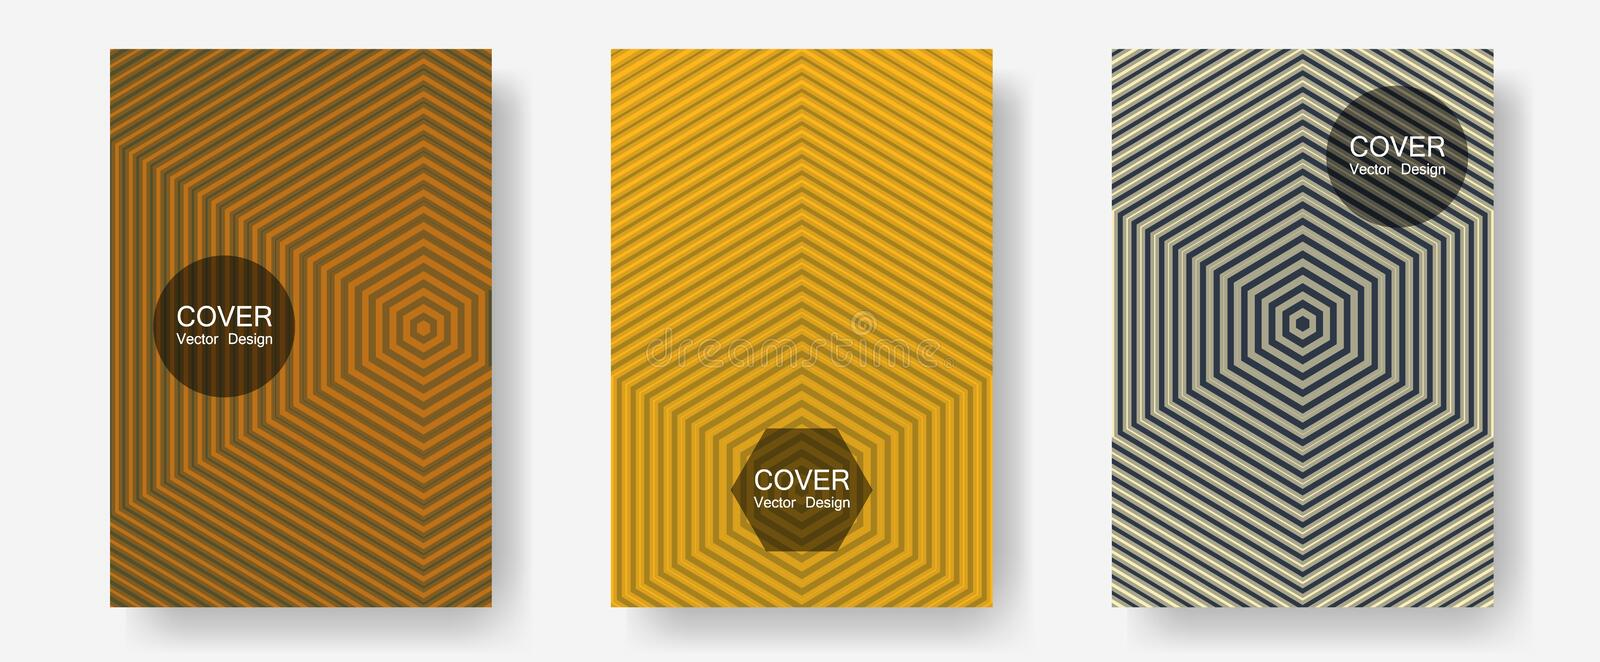 Brochure covers, posters, banners vector templates. Presentation backdrops. Halftone lines annual report templates. Minimal booklets. Geometric graphic design stock photo